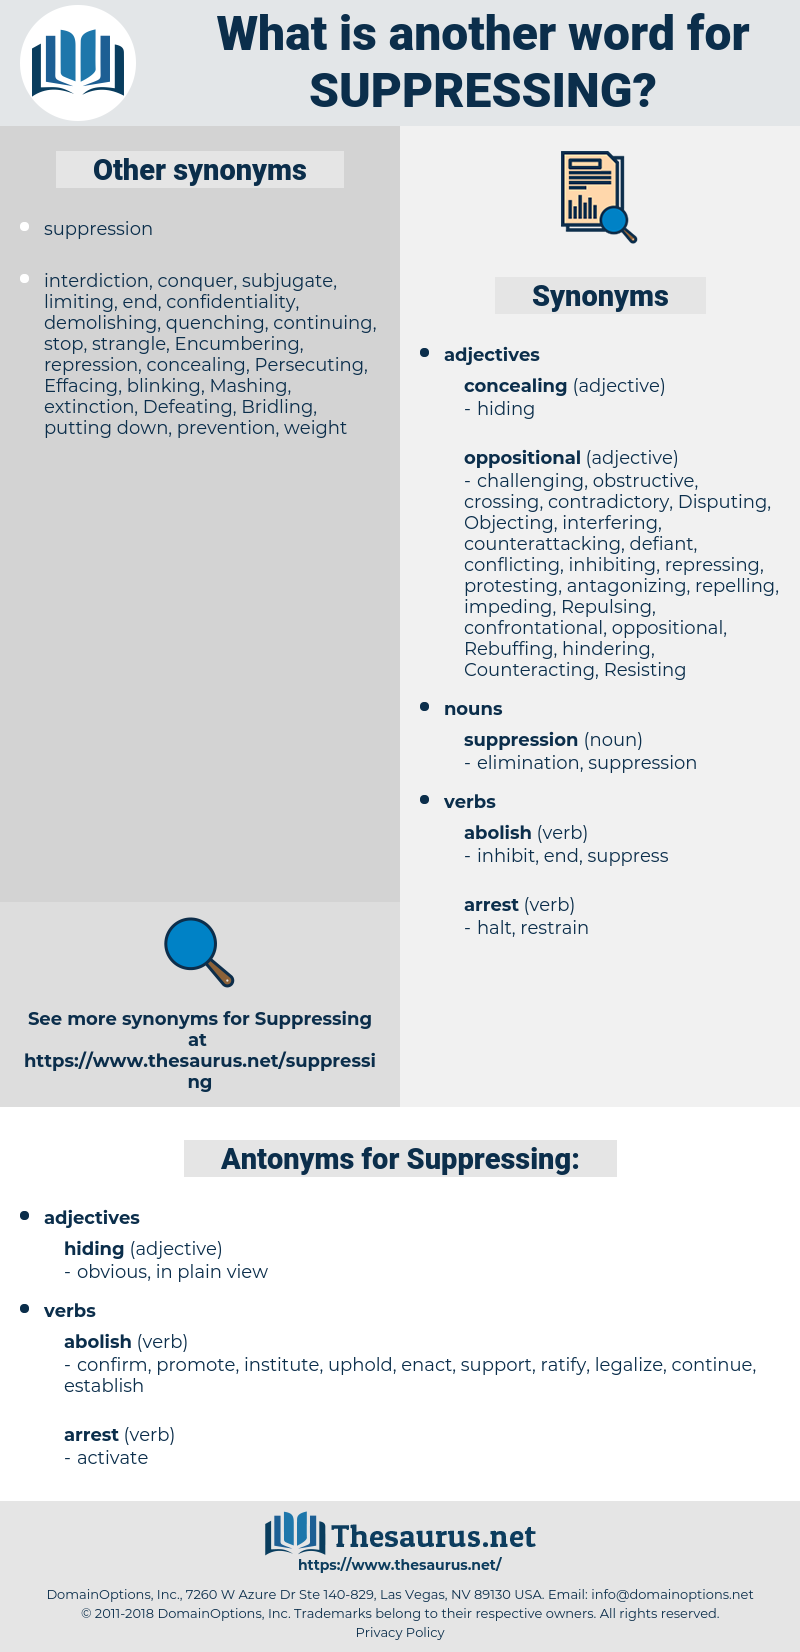 Suppressing, synonym Suppressing, another word for Suppressing, words like Suppressing, thesaurus Suppressing